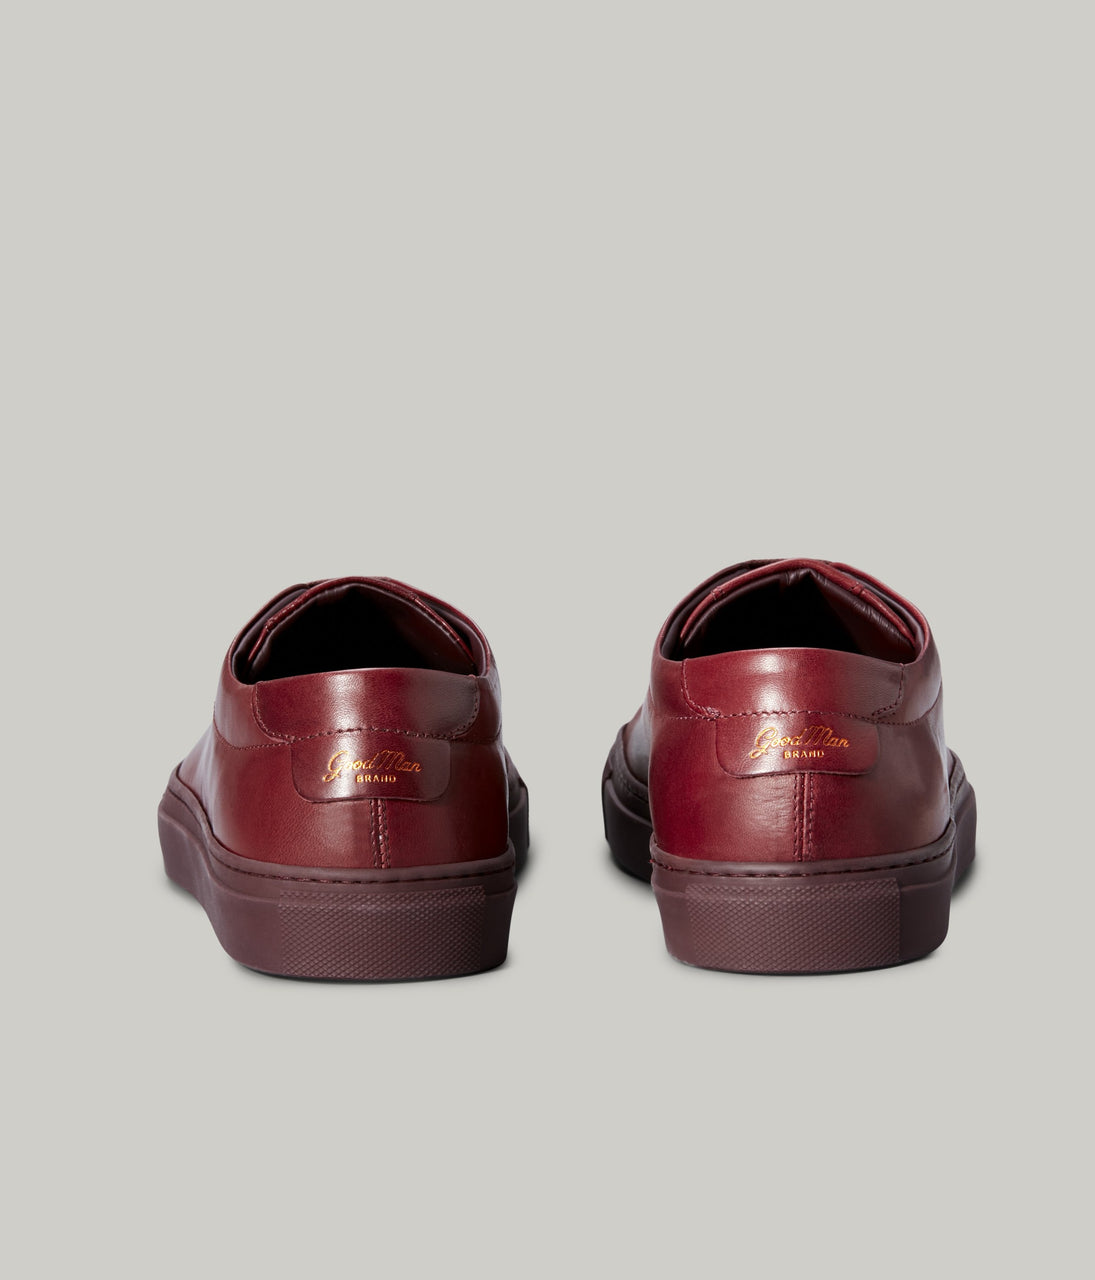 Edge Mono Lo Top Sneaker in Nappa Leather - Burgundy - Good Man Brand - Edge Mono Lo Top Sneaker in Nappa Leather - Burgundy